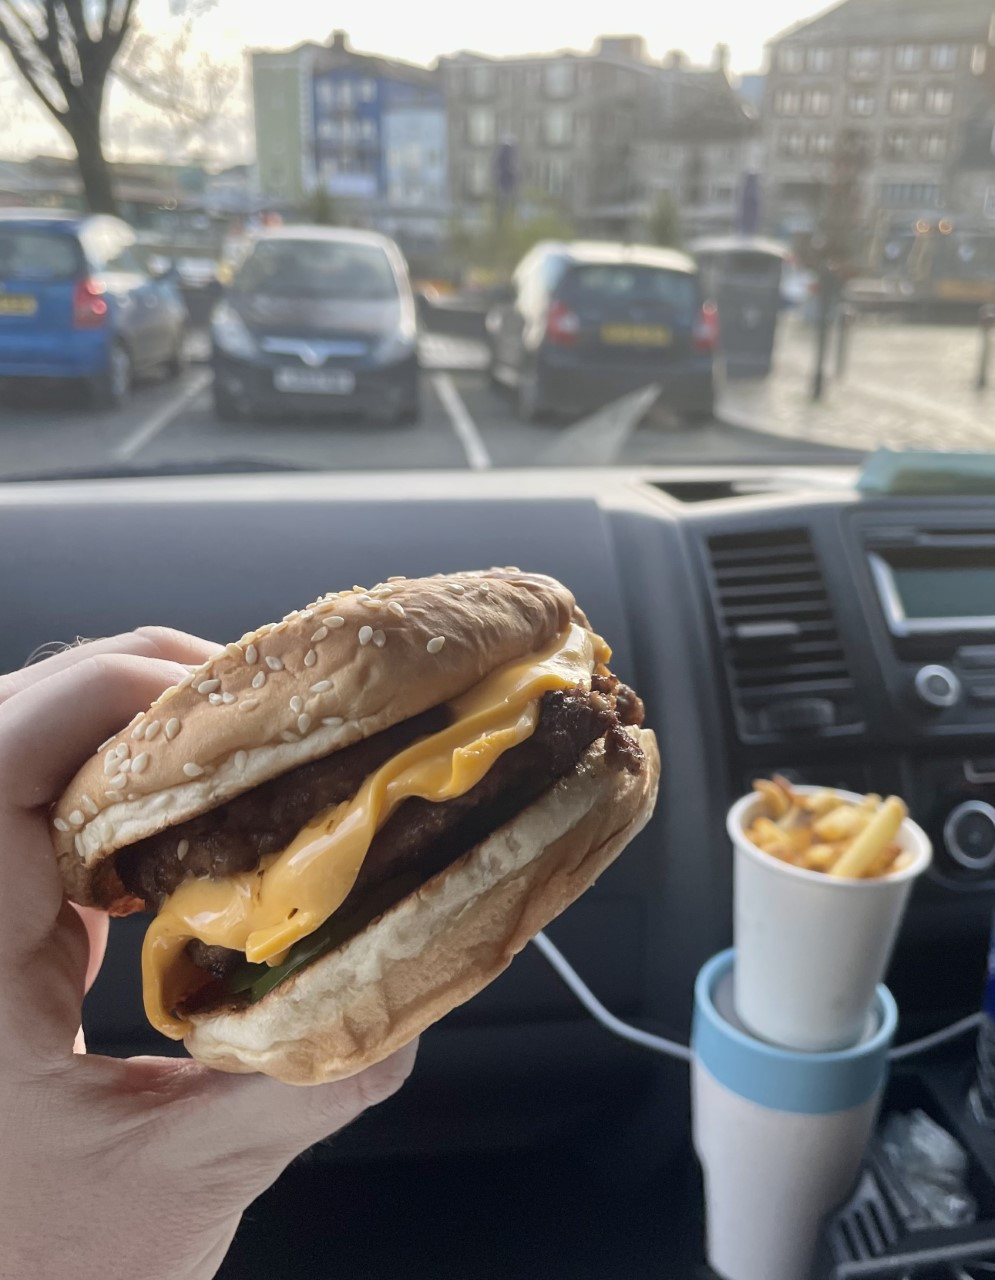 Close up shot of Ross's wrist holding his burger, sat inside the car